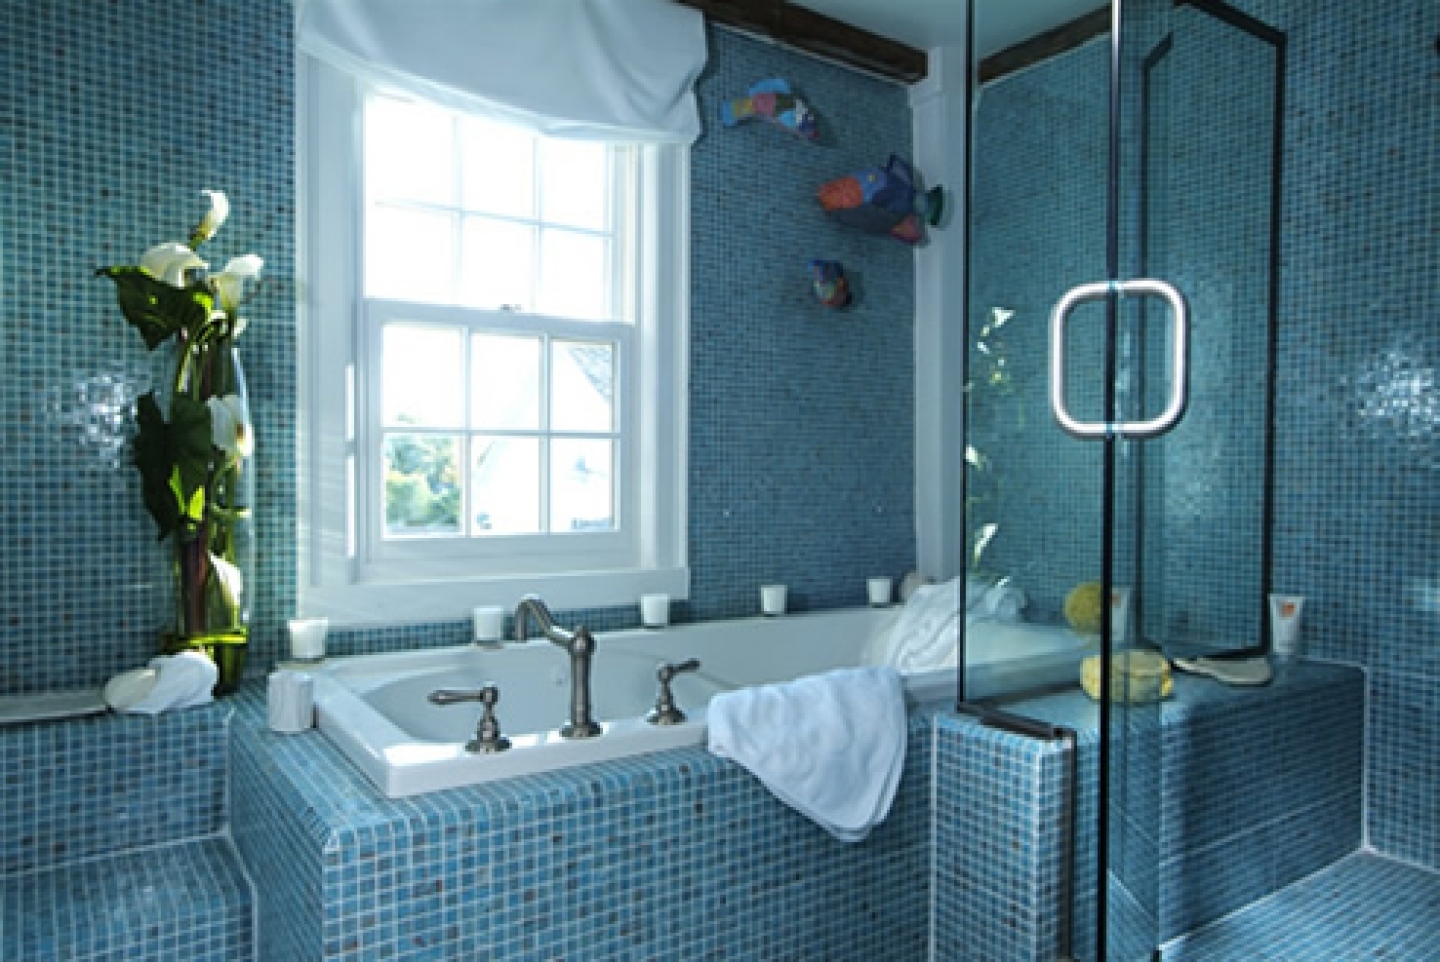 40 vintage blue bathroom tiles ideas and pictures Bathroom tile decorating ideas